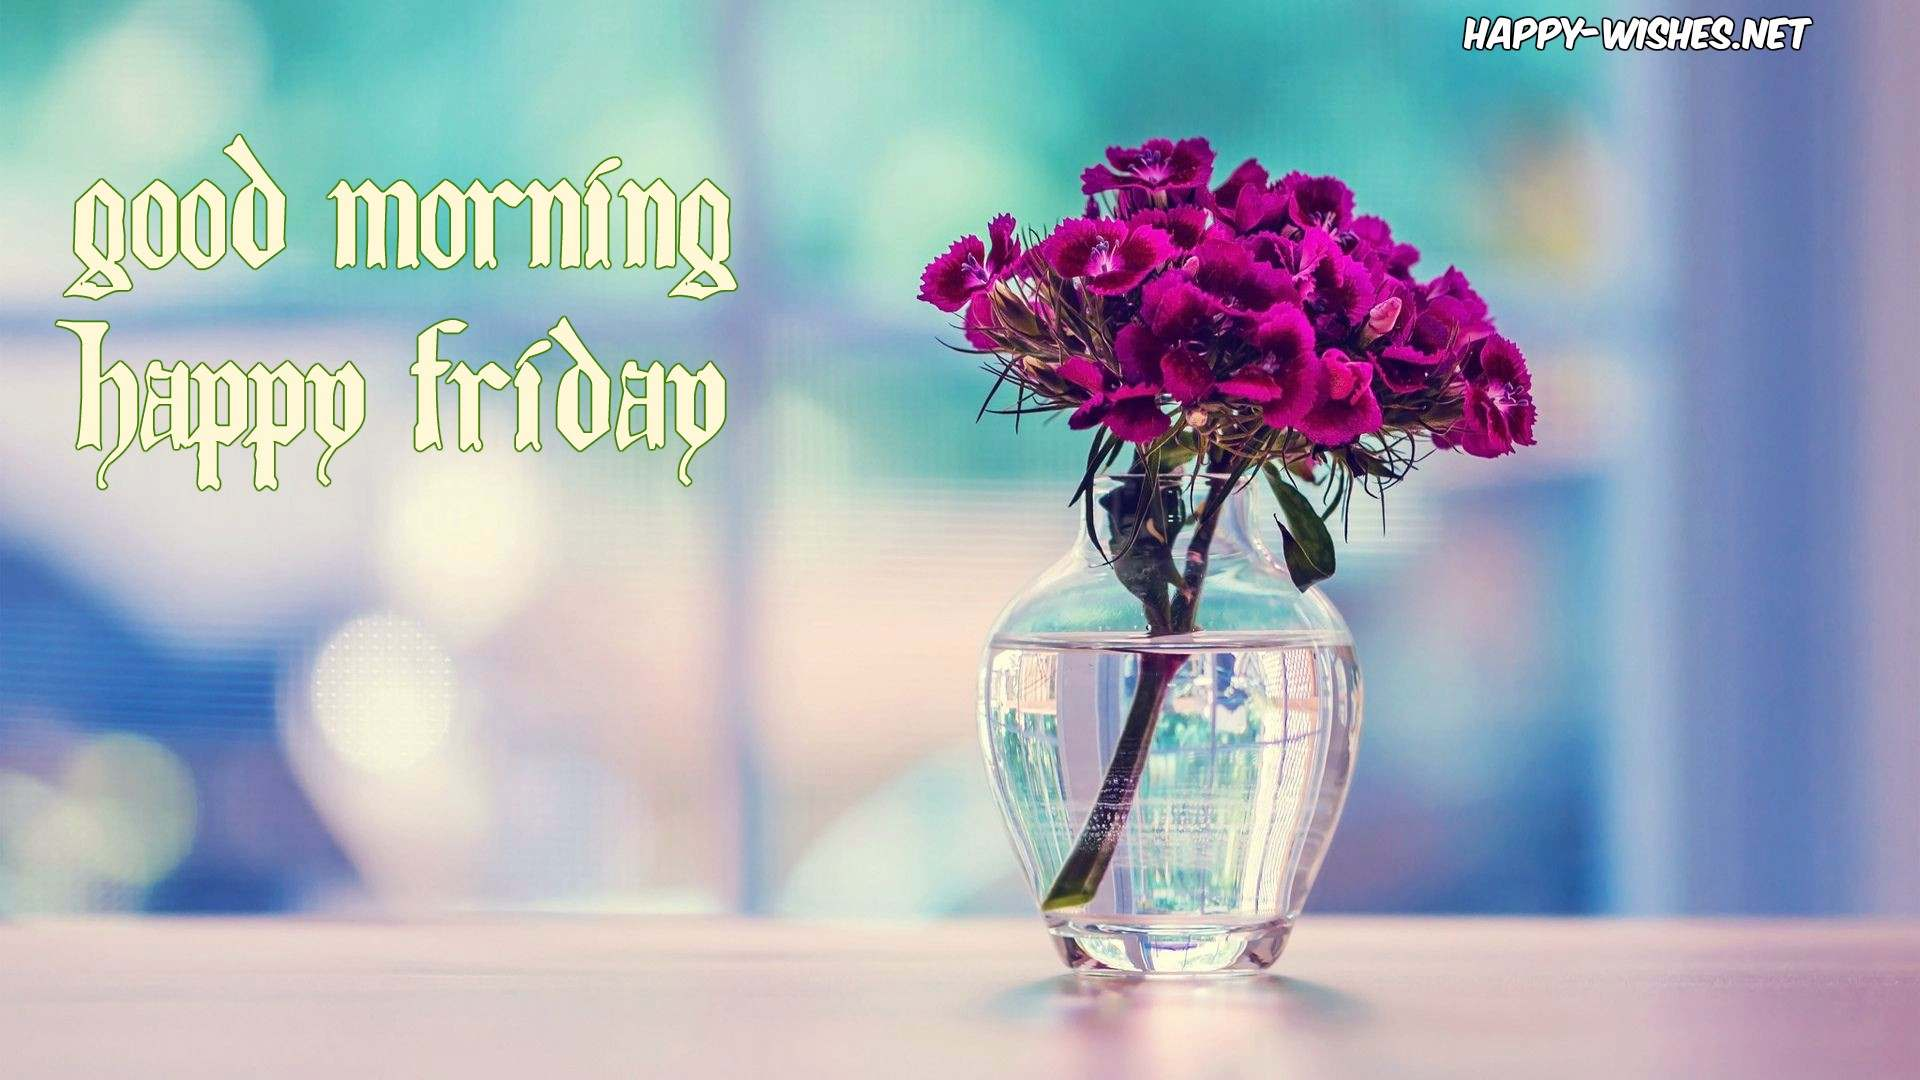 Good Morning wishes on Friday - Images